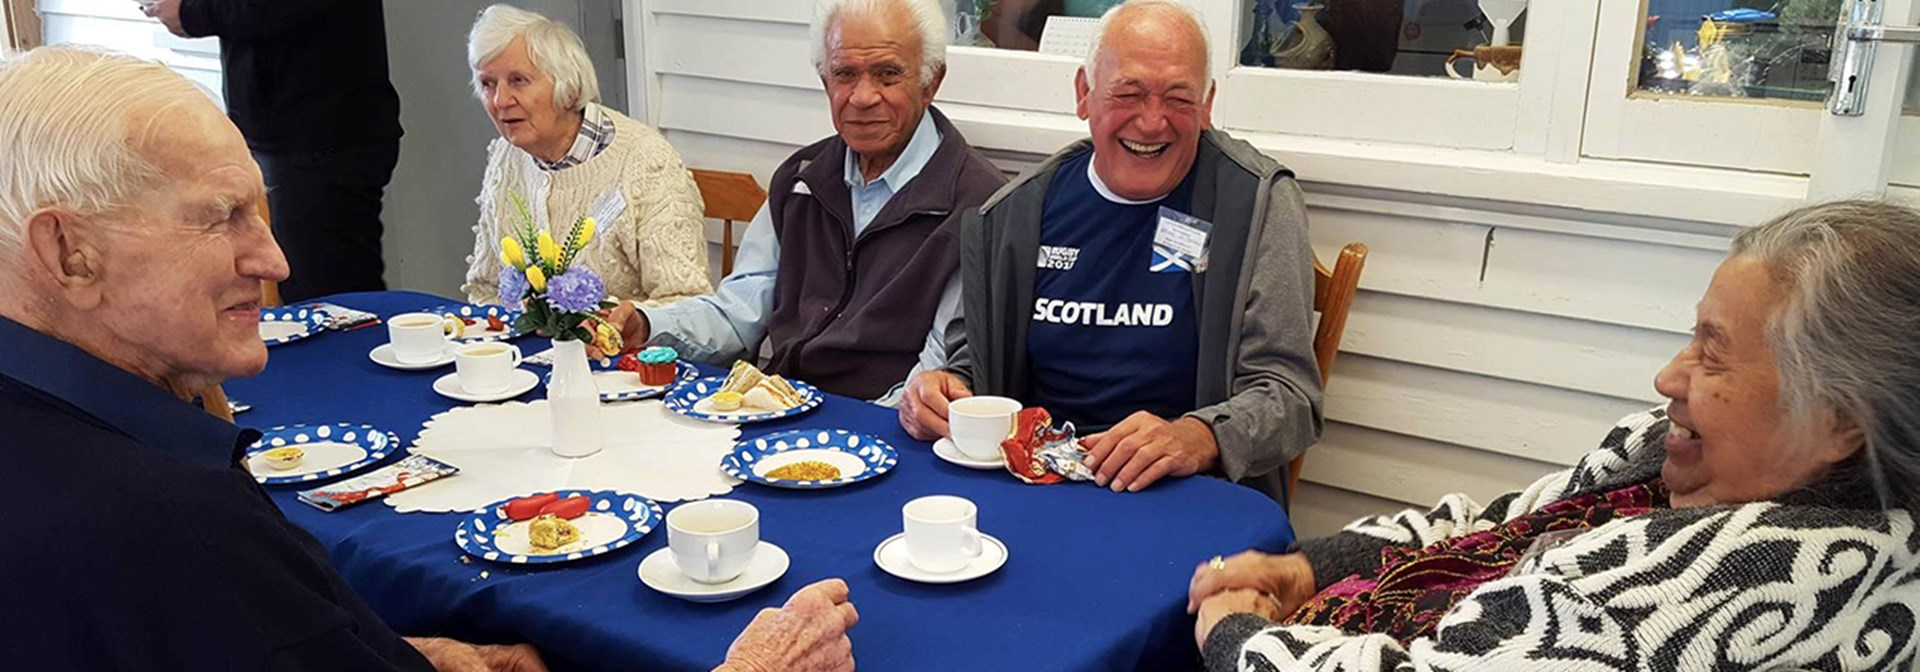 The Selwyn Foundation provides services for older people who have a diagnosis of dementia and others, who benefit from a stimulating, social environment